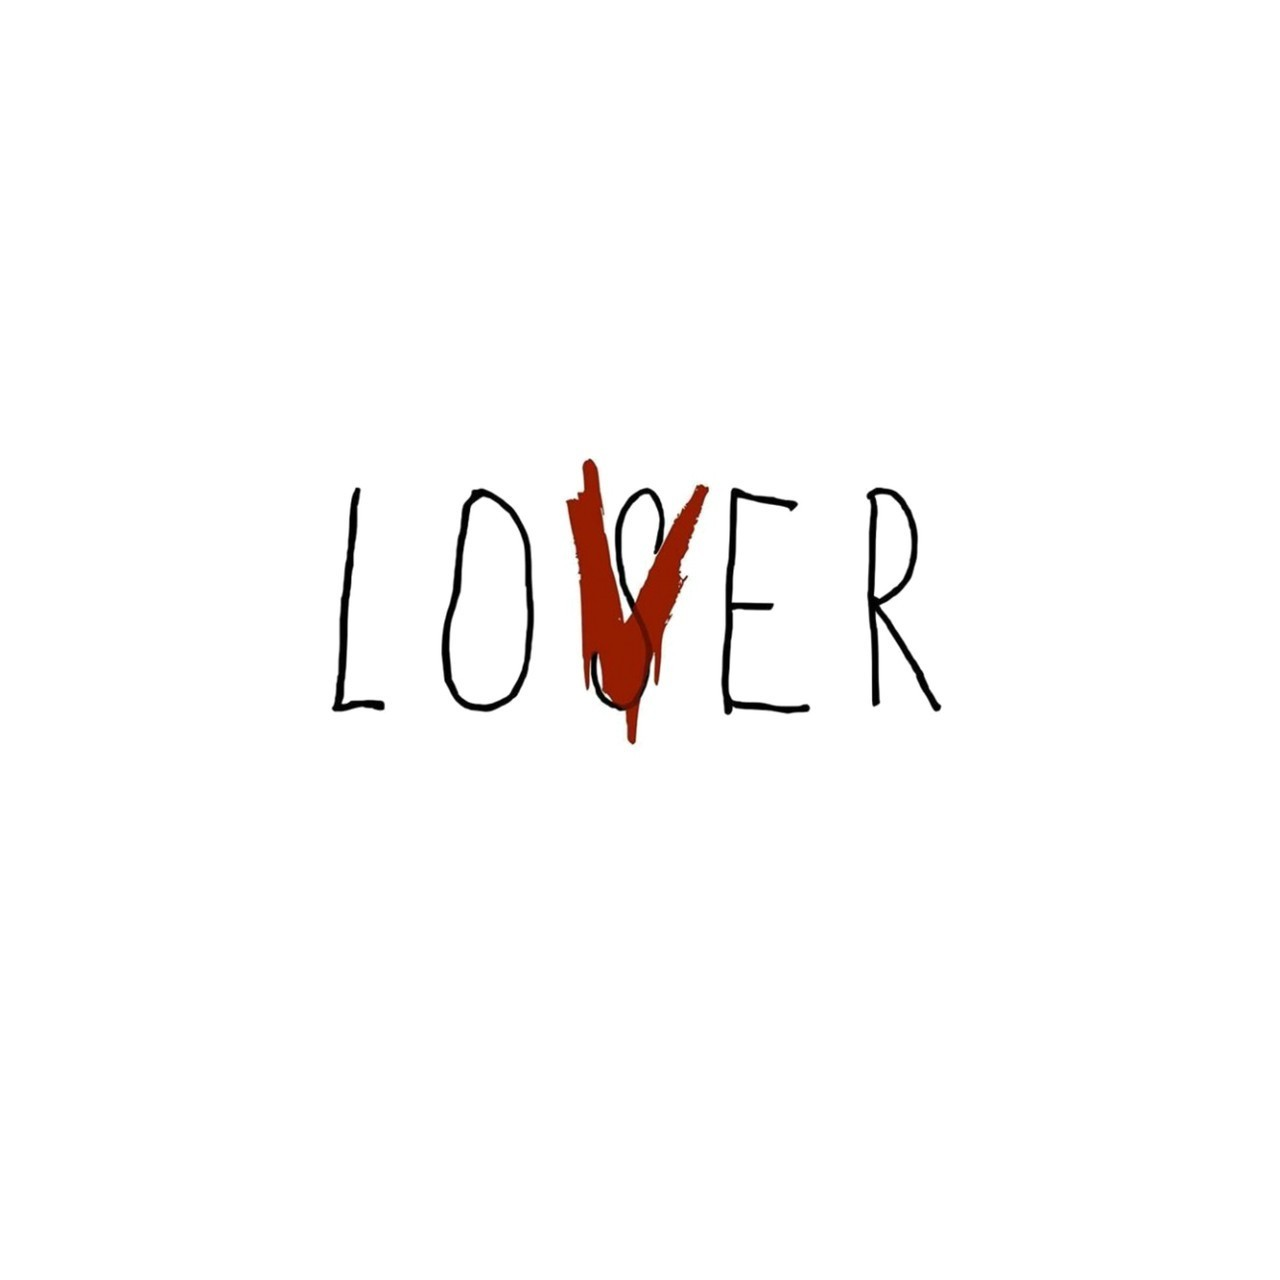 Lover Wallpaper Shared By Emma On We Heart It